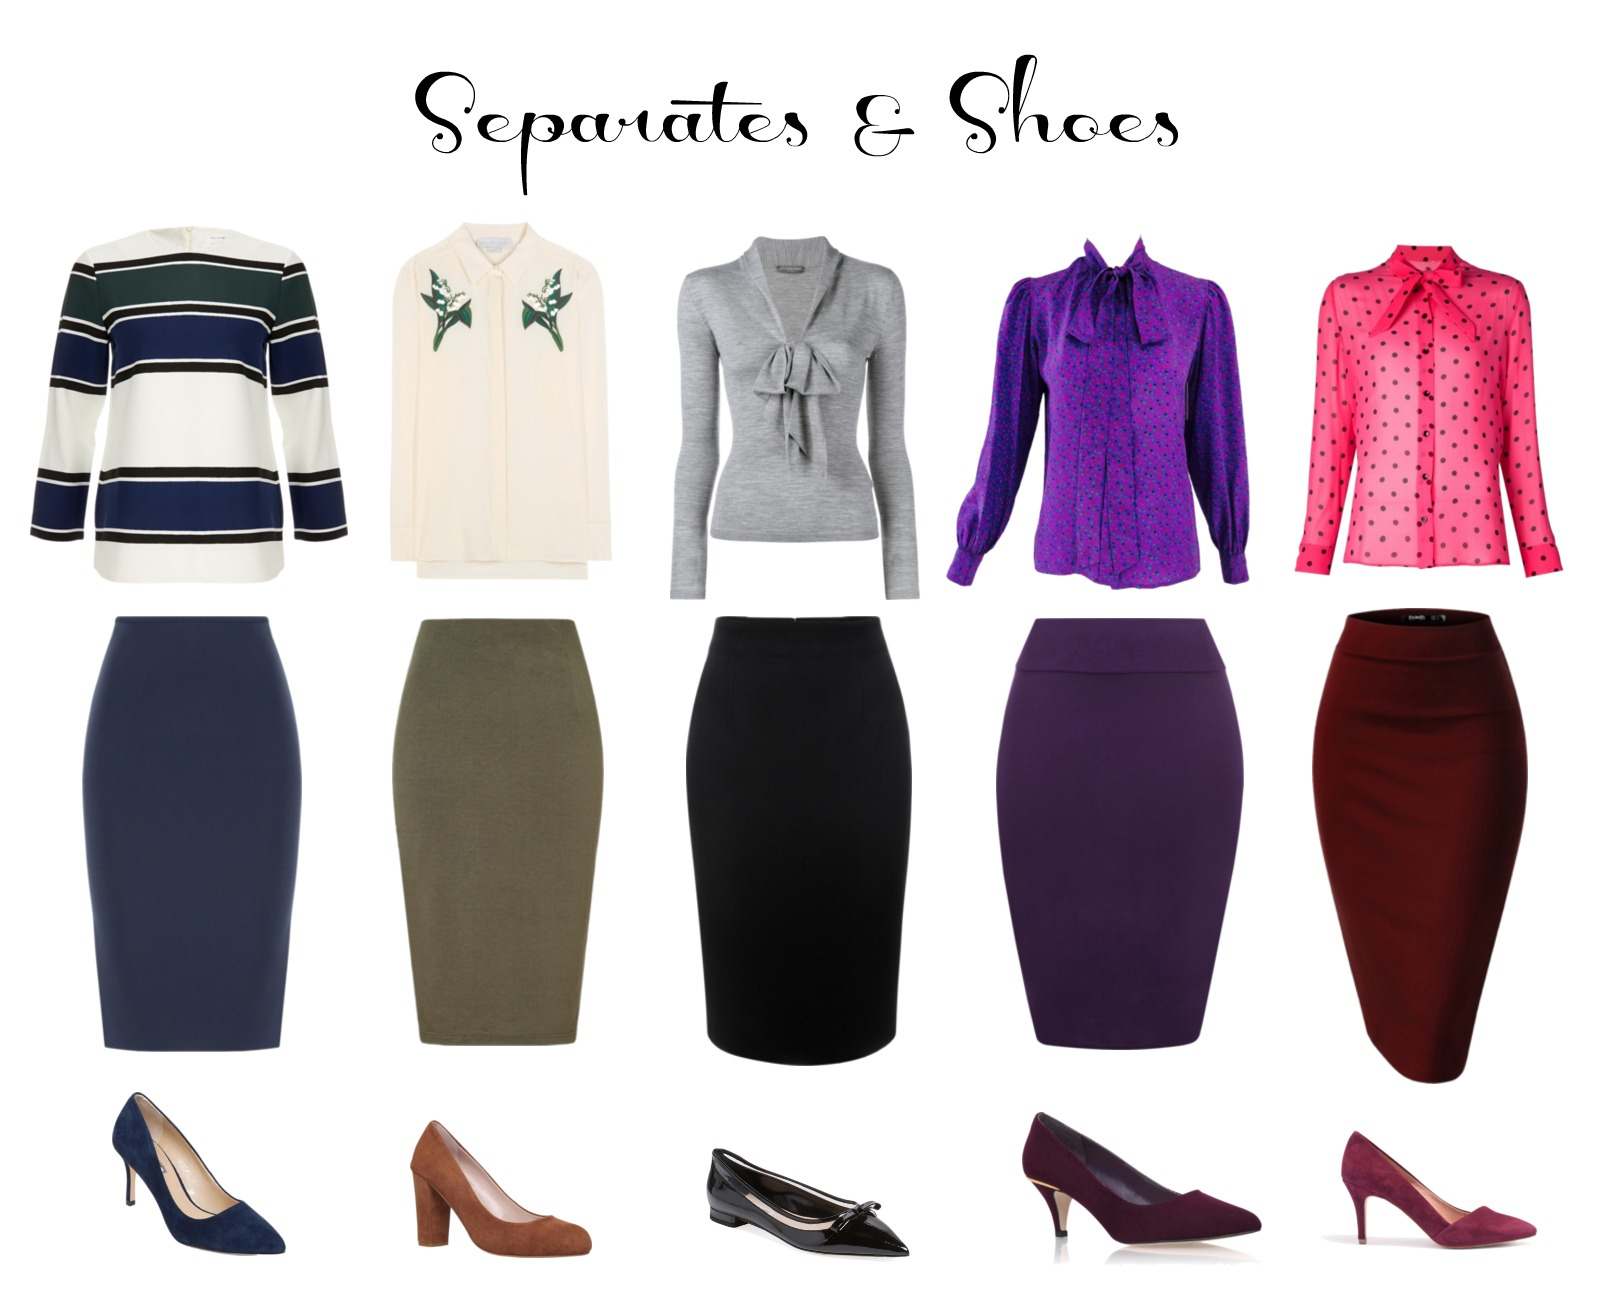 vintage style separates and shoes